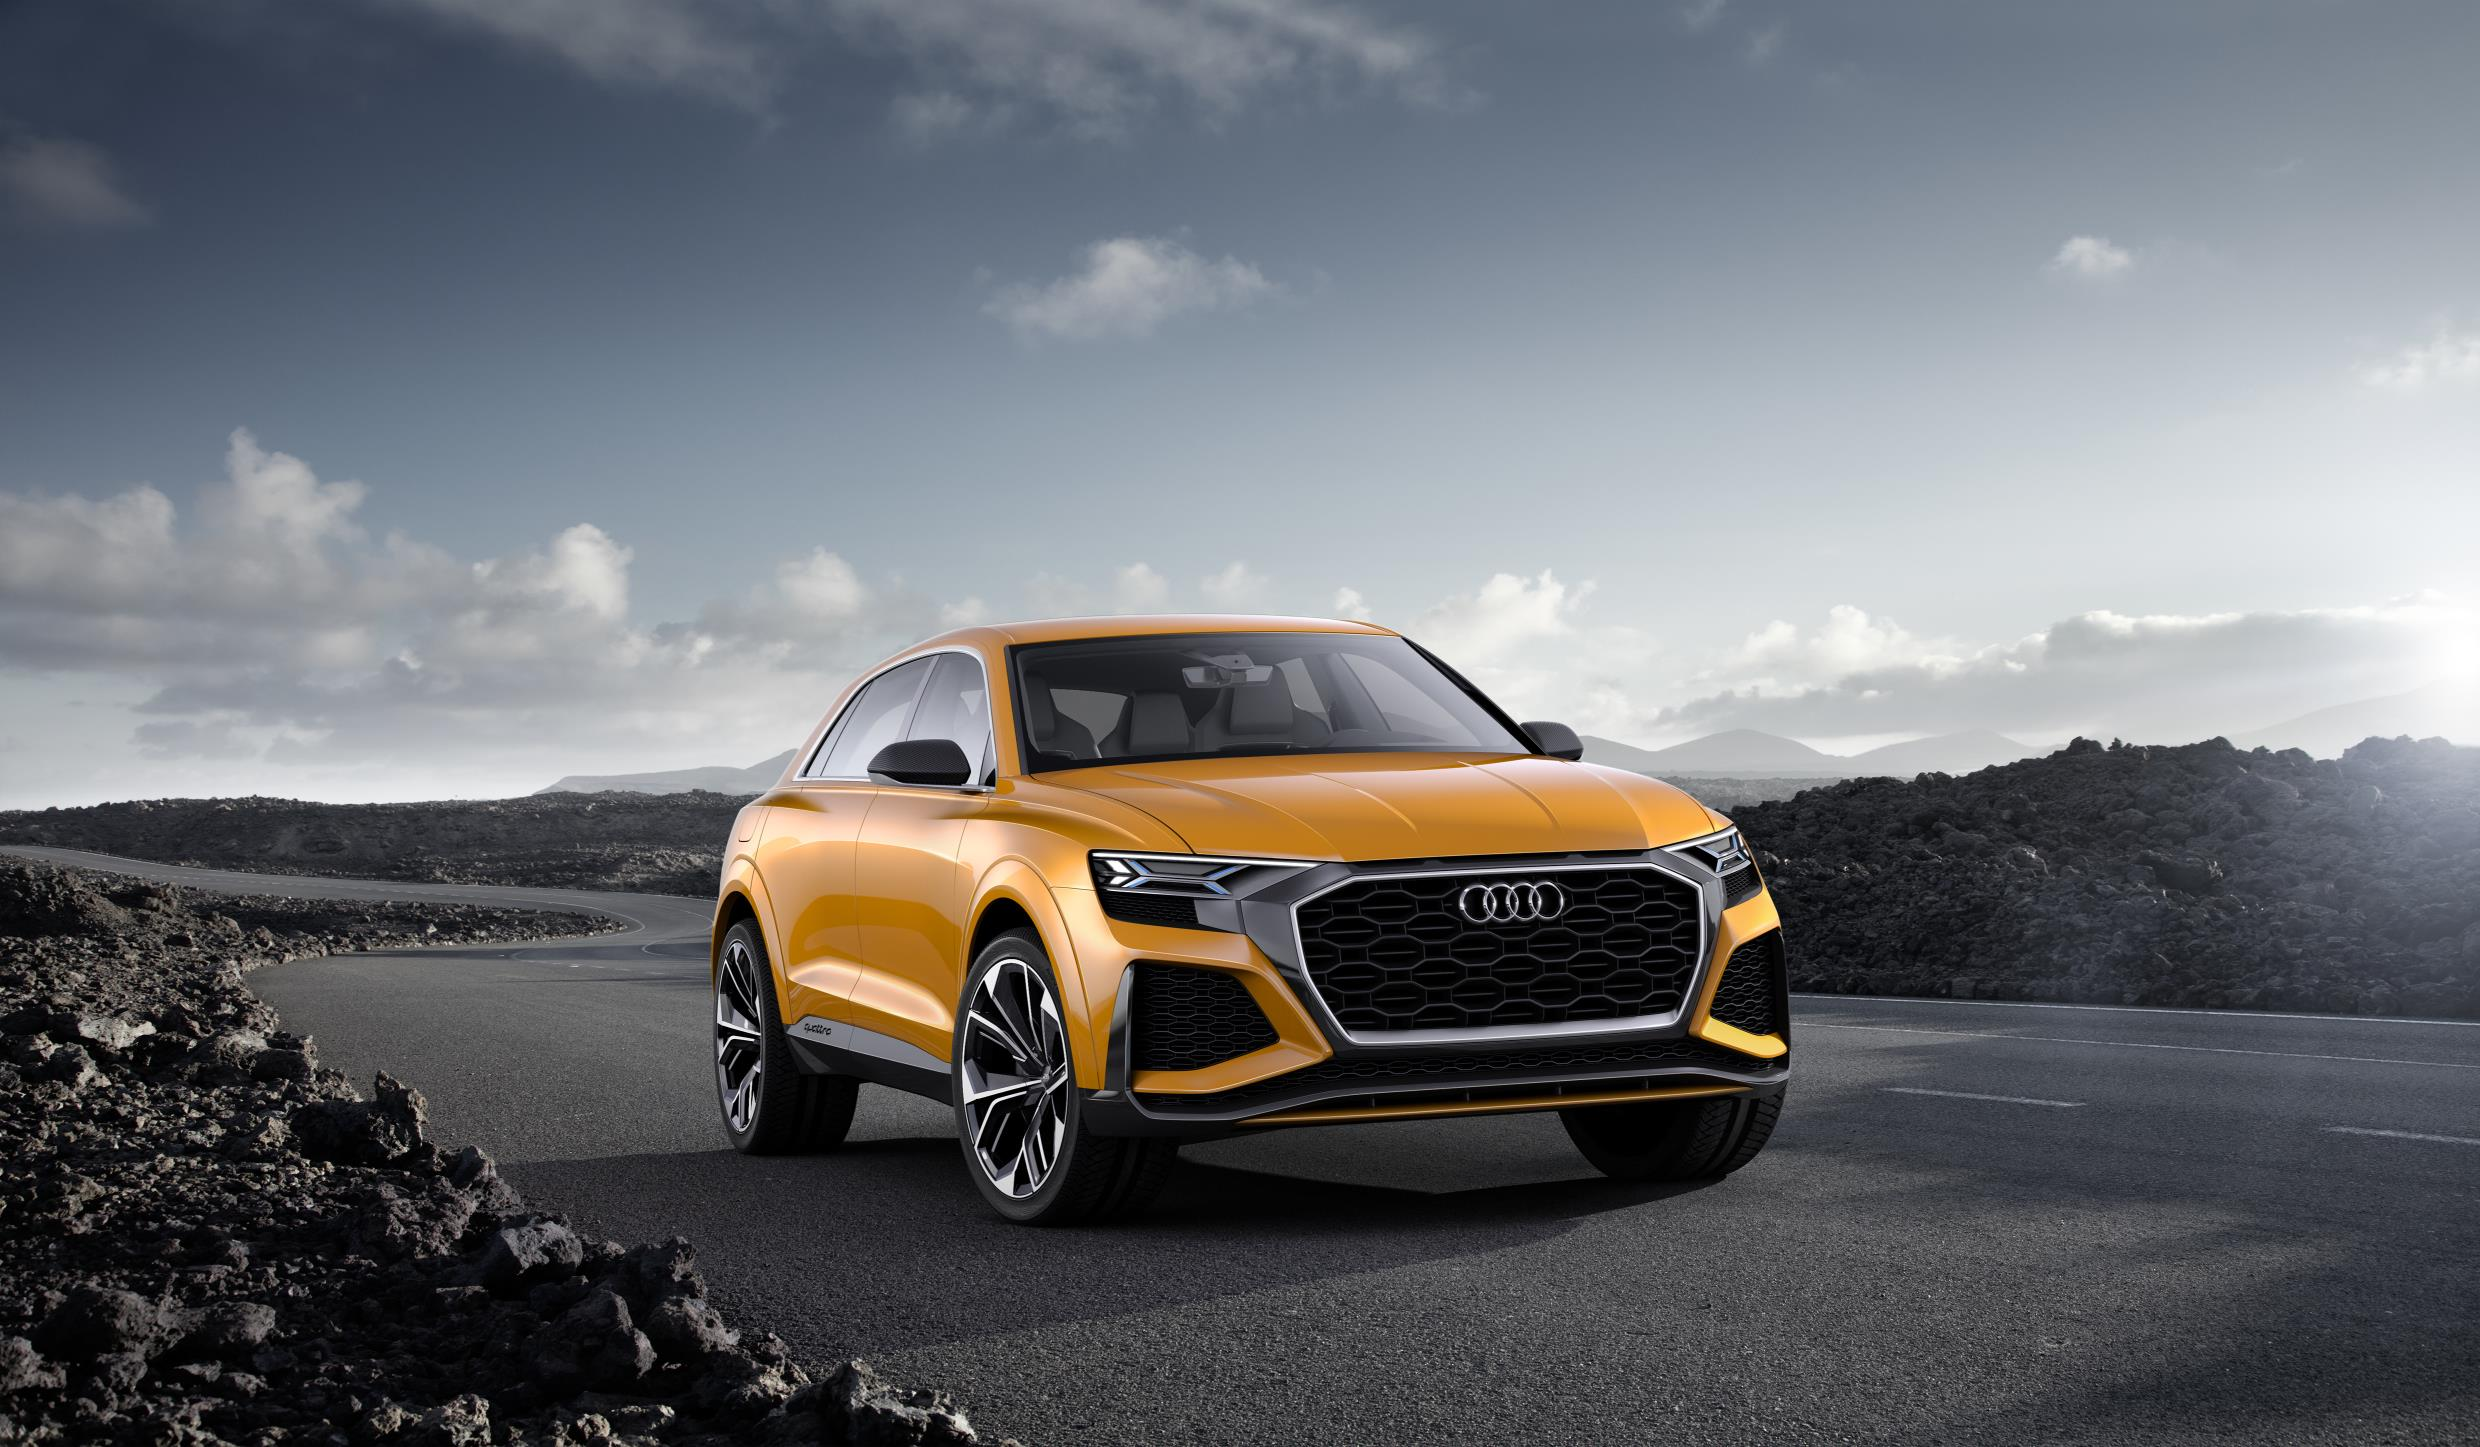 Audi Q8 And Q4 Production Confirmed For 2018 And 2019